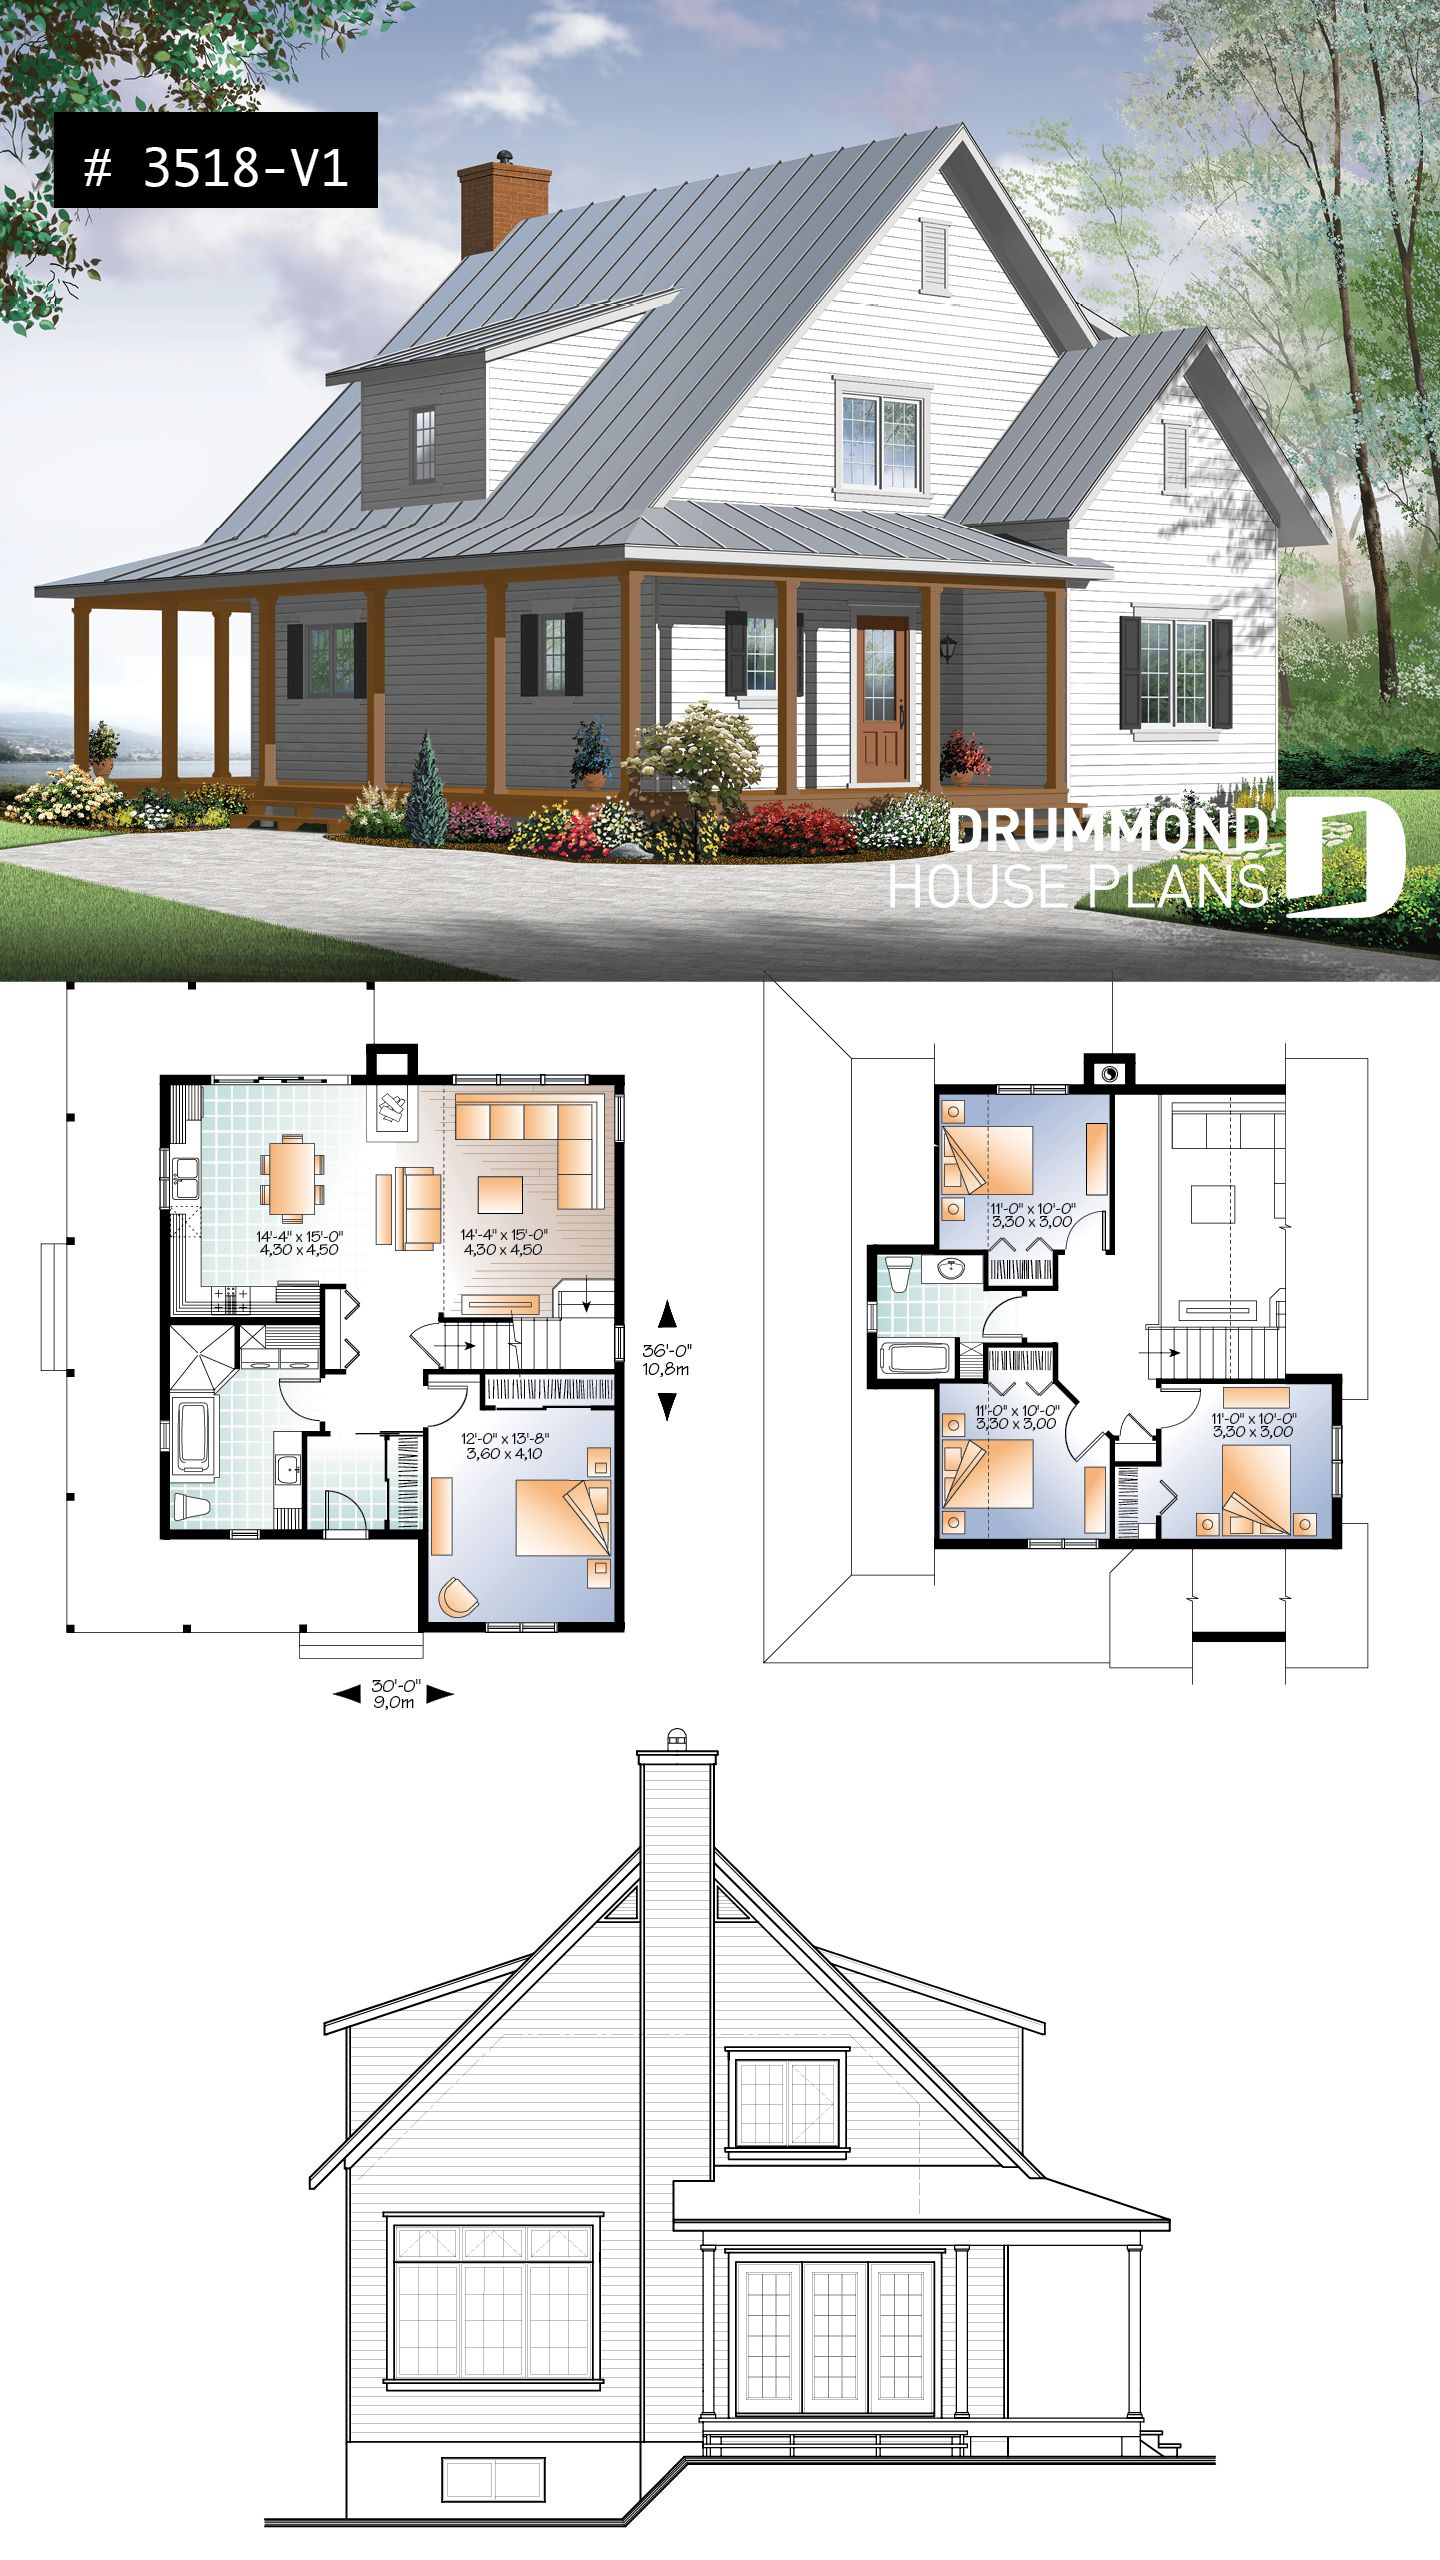 Discover The Plan 3518 V1 Hickory Lane 2 Which Will Please You For Its 4 Bedrooms And For Its Farmhouse Styles Affordable House Plans Craftsman House Plans Cottage House Plans